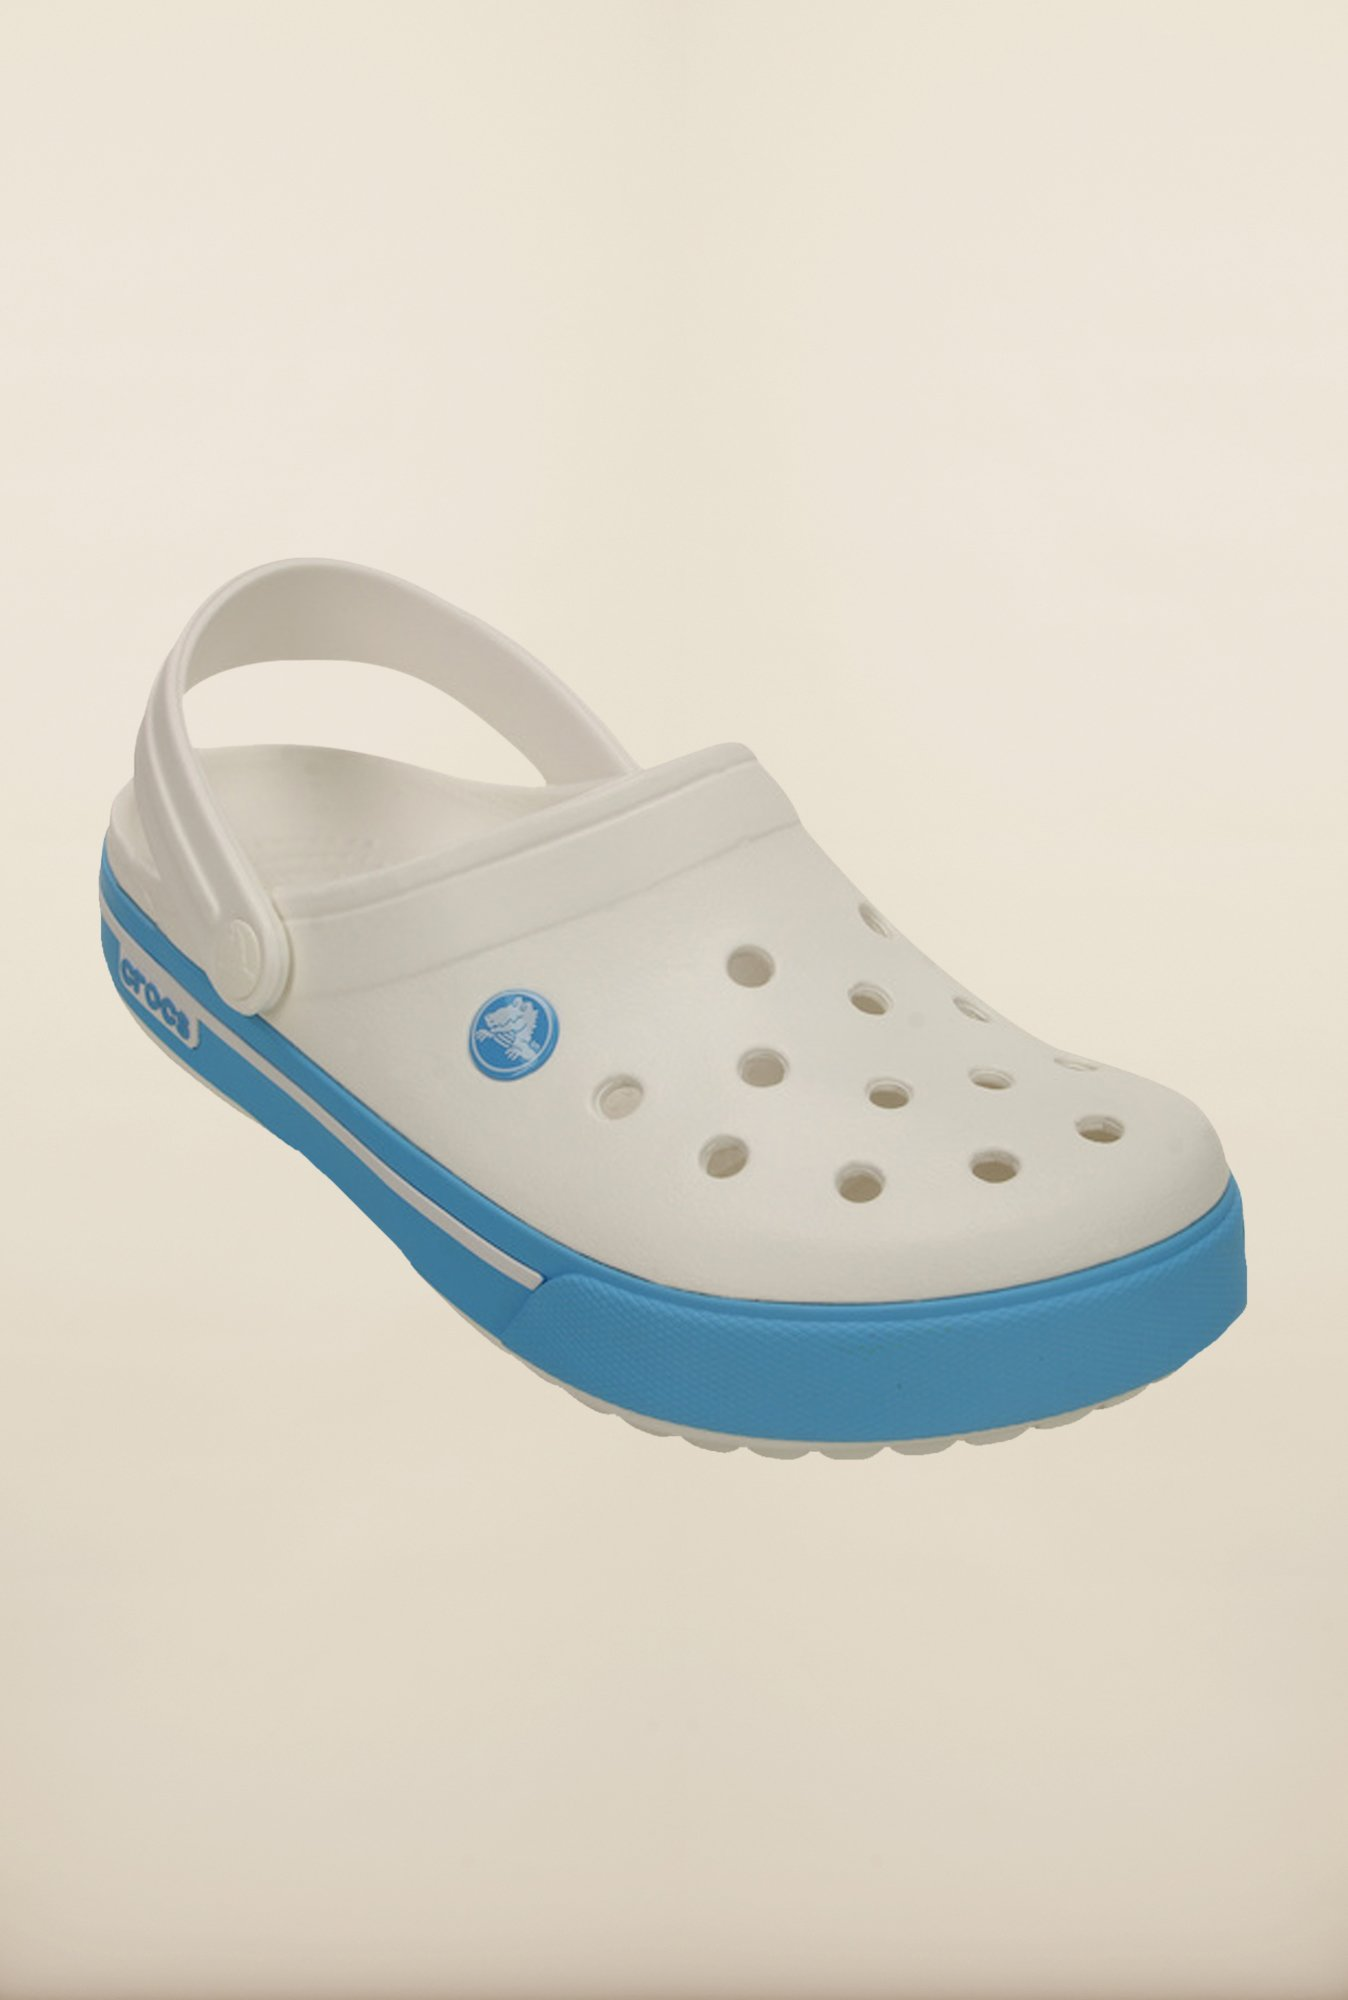 Crocs Crocband White & Blue Clogs